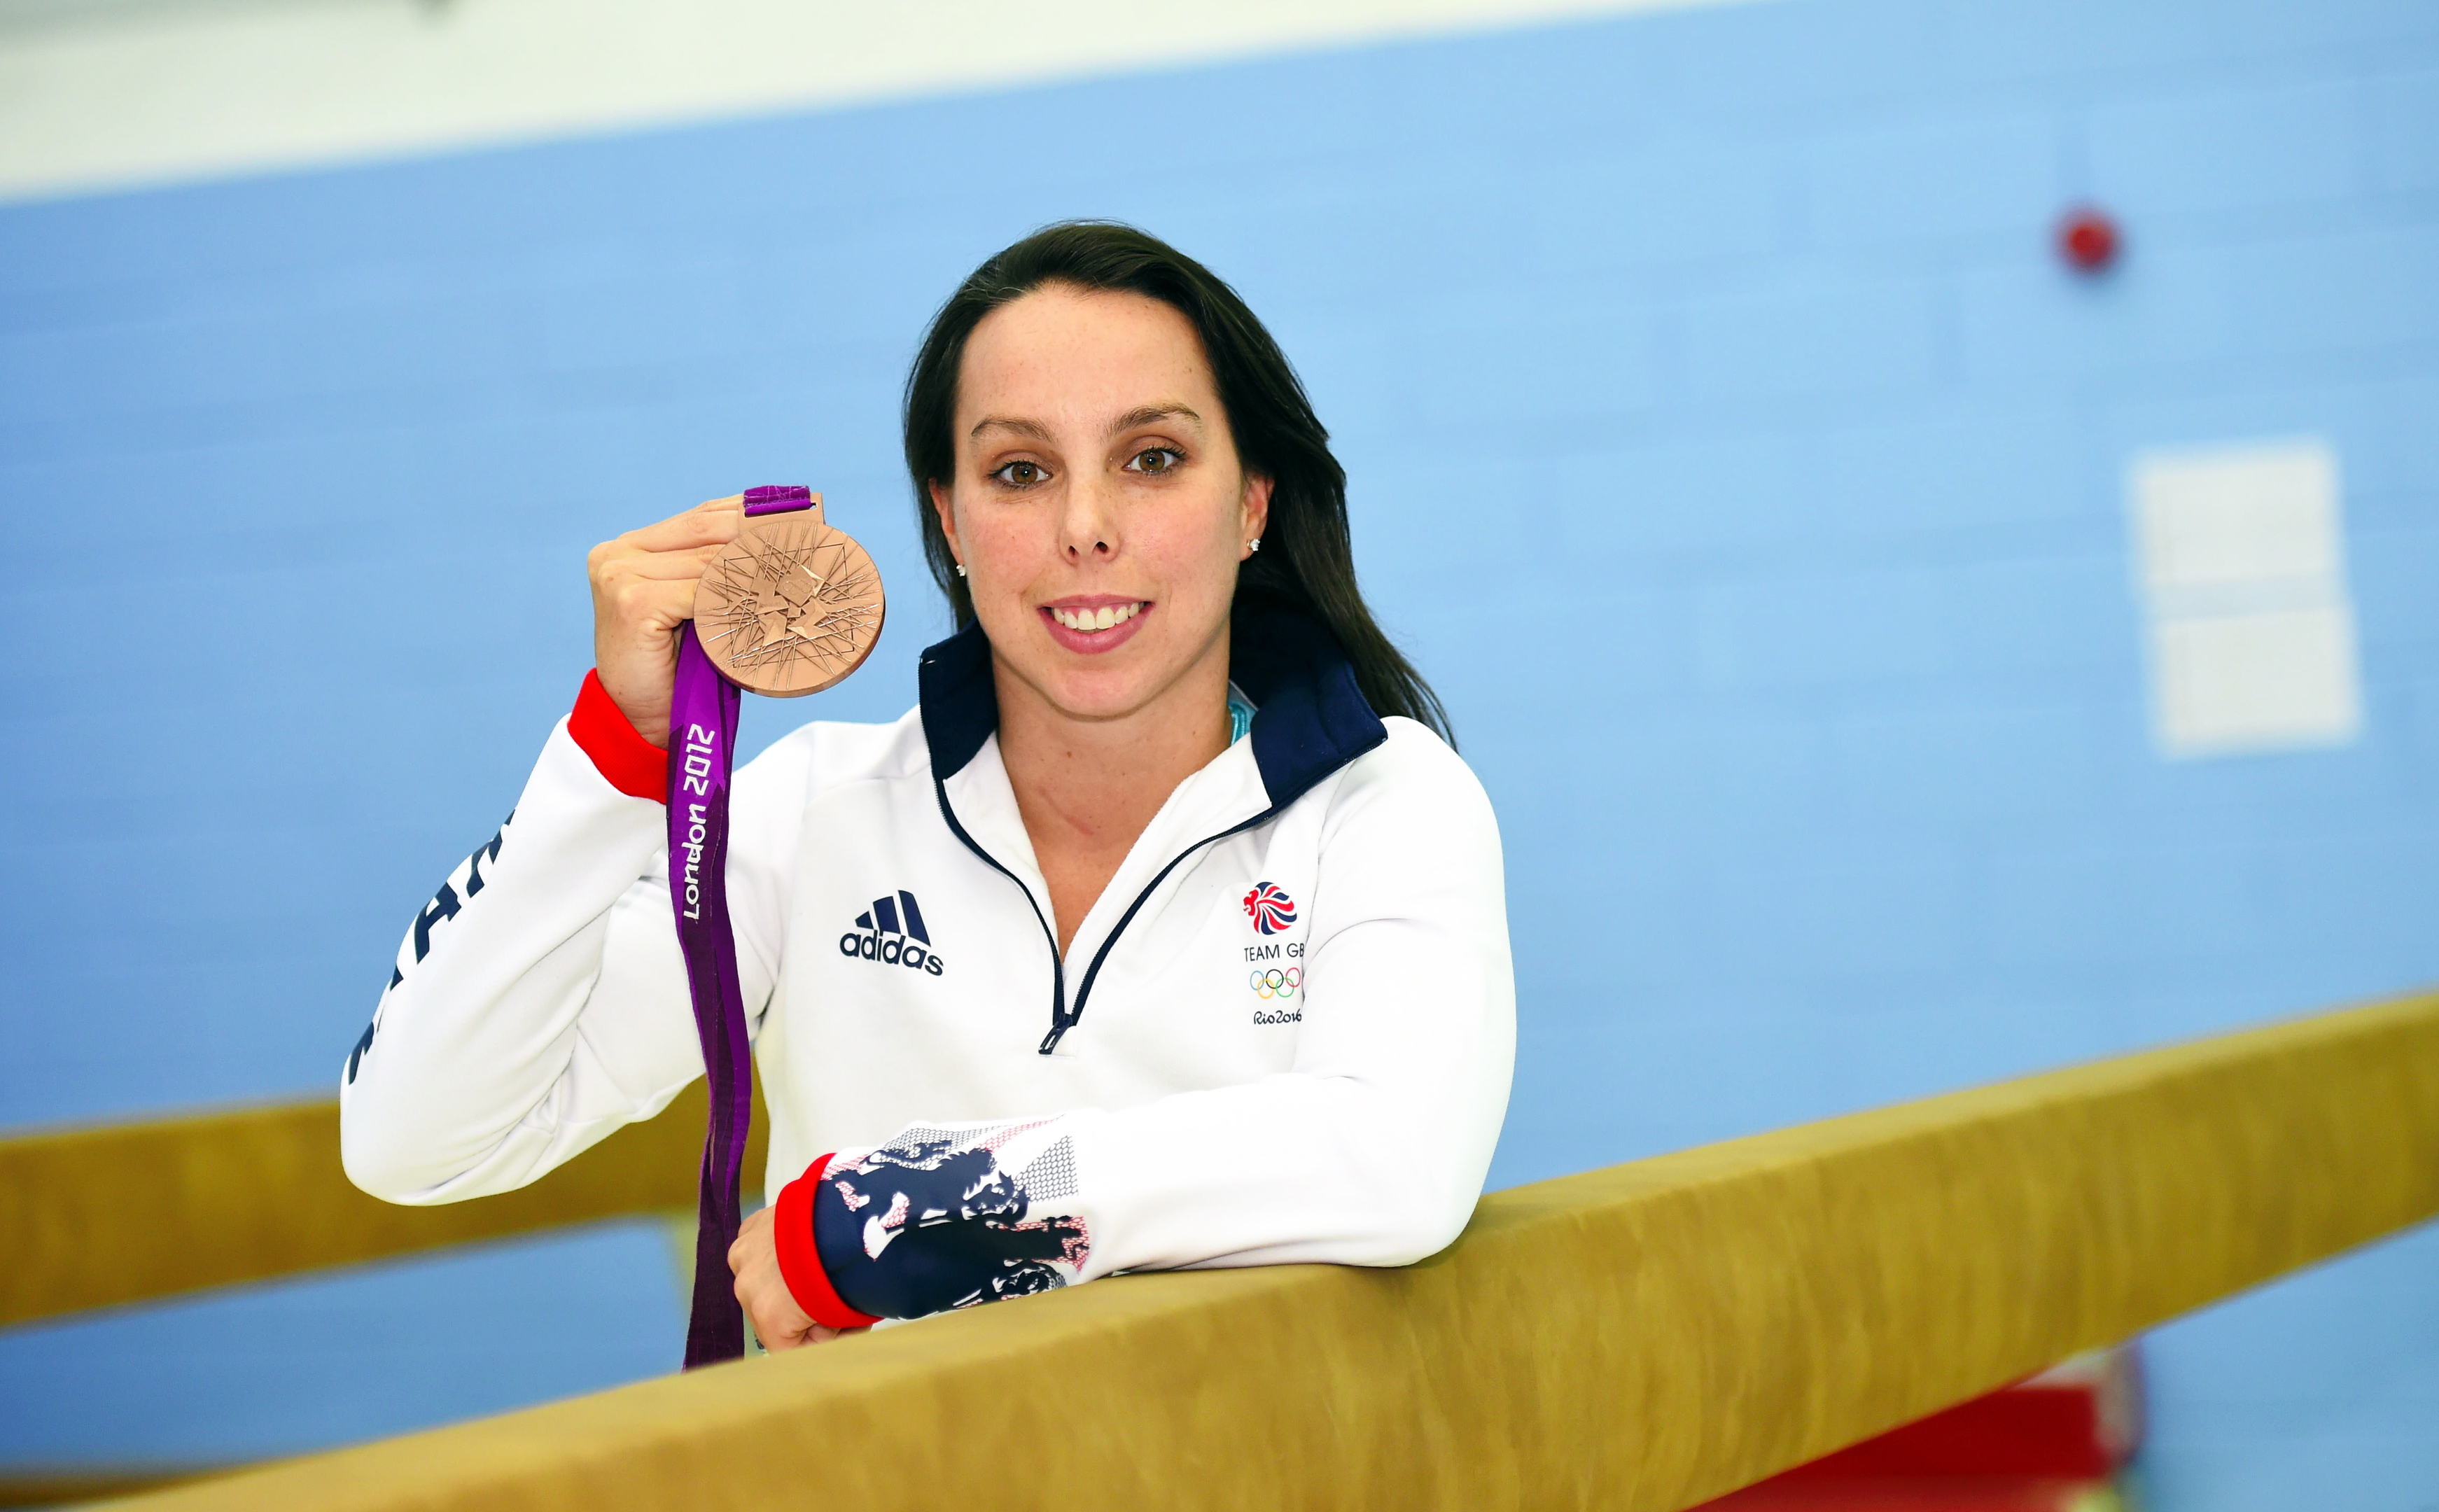 Name plaque reveal and a selection of City of Aberdeen Gymnastics Club's (COAG) gymnasts performing alongside Beth Tweddle at the Alex Collie Gymnastics Performance Centre, Cardens Knowe, Bridge of Don. Pictured is Beth Tweddle MBE, Olympic, World and European medallist. 20/08/18 Picture by HEATHER FOWLIE